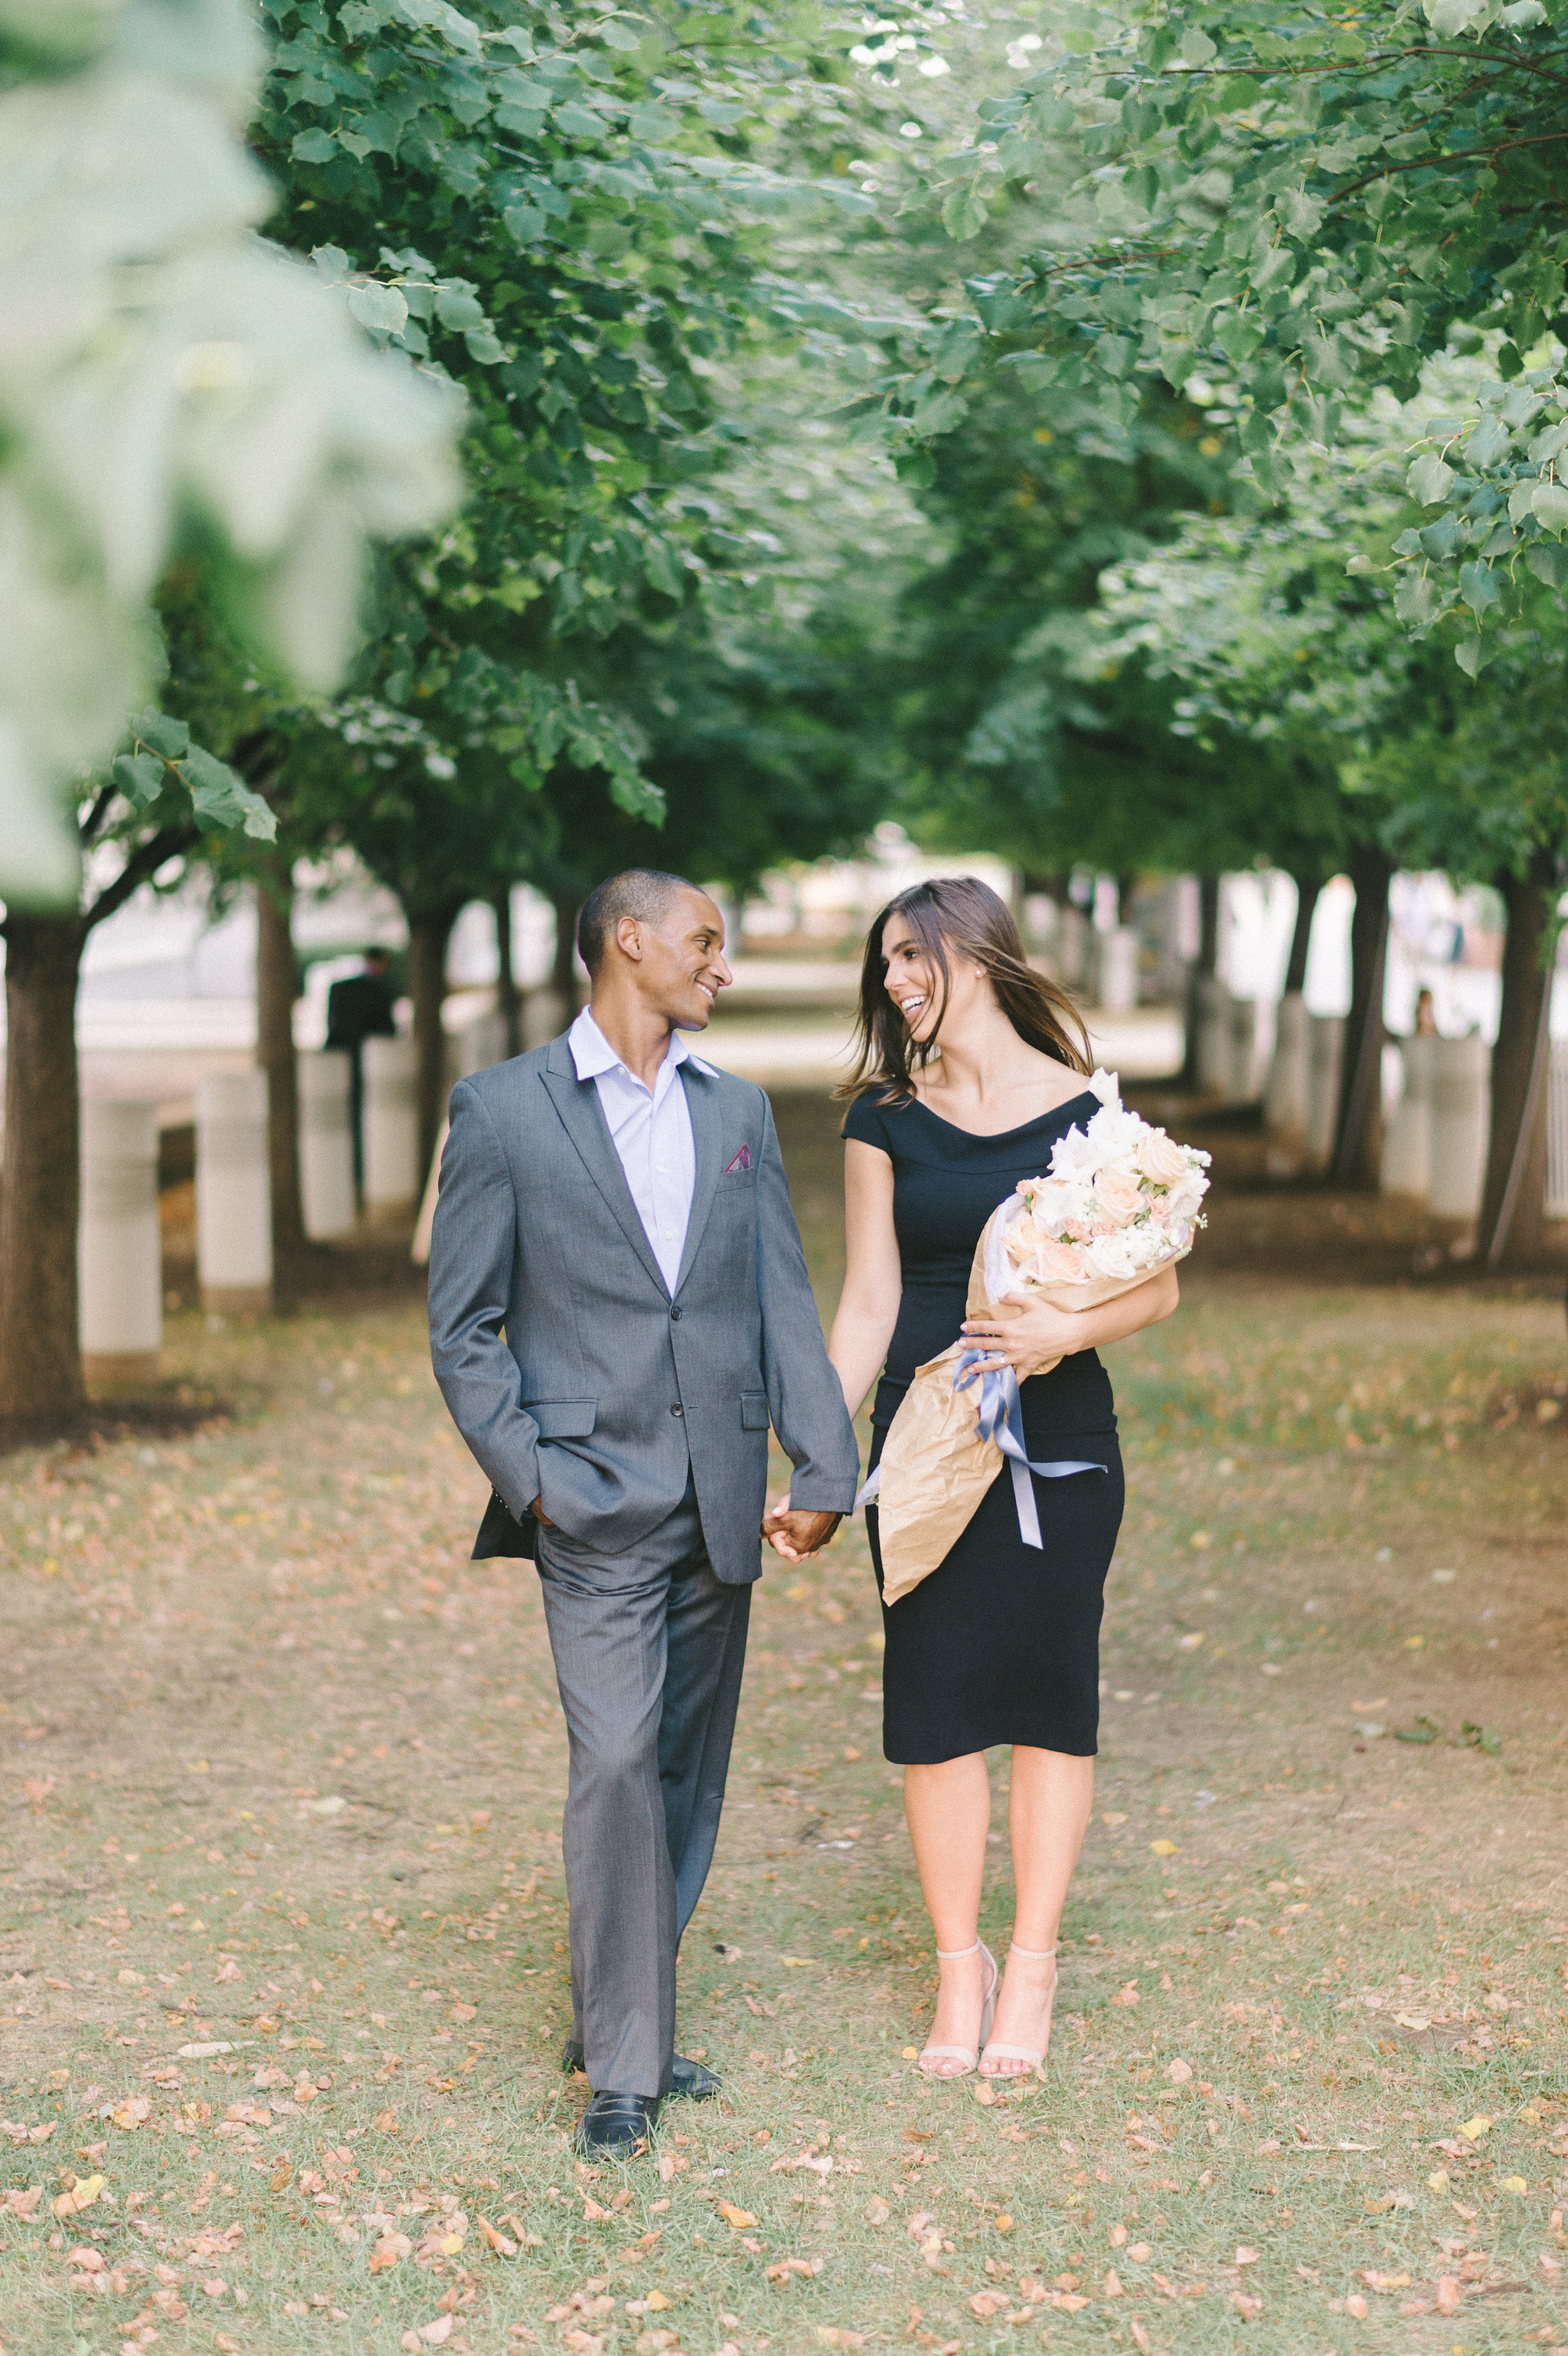 Sam and Damion by Liz Fogarty Photography